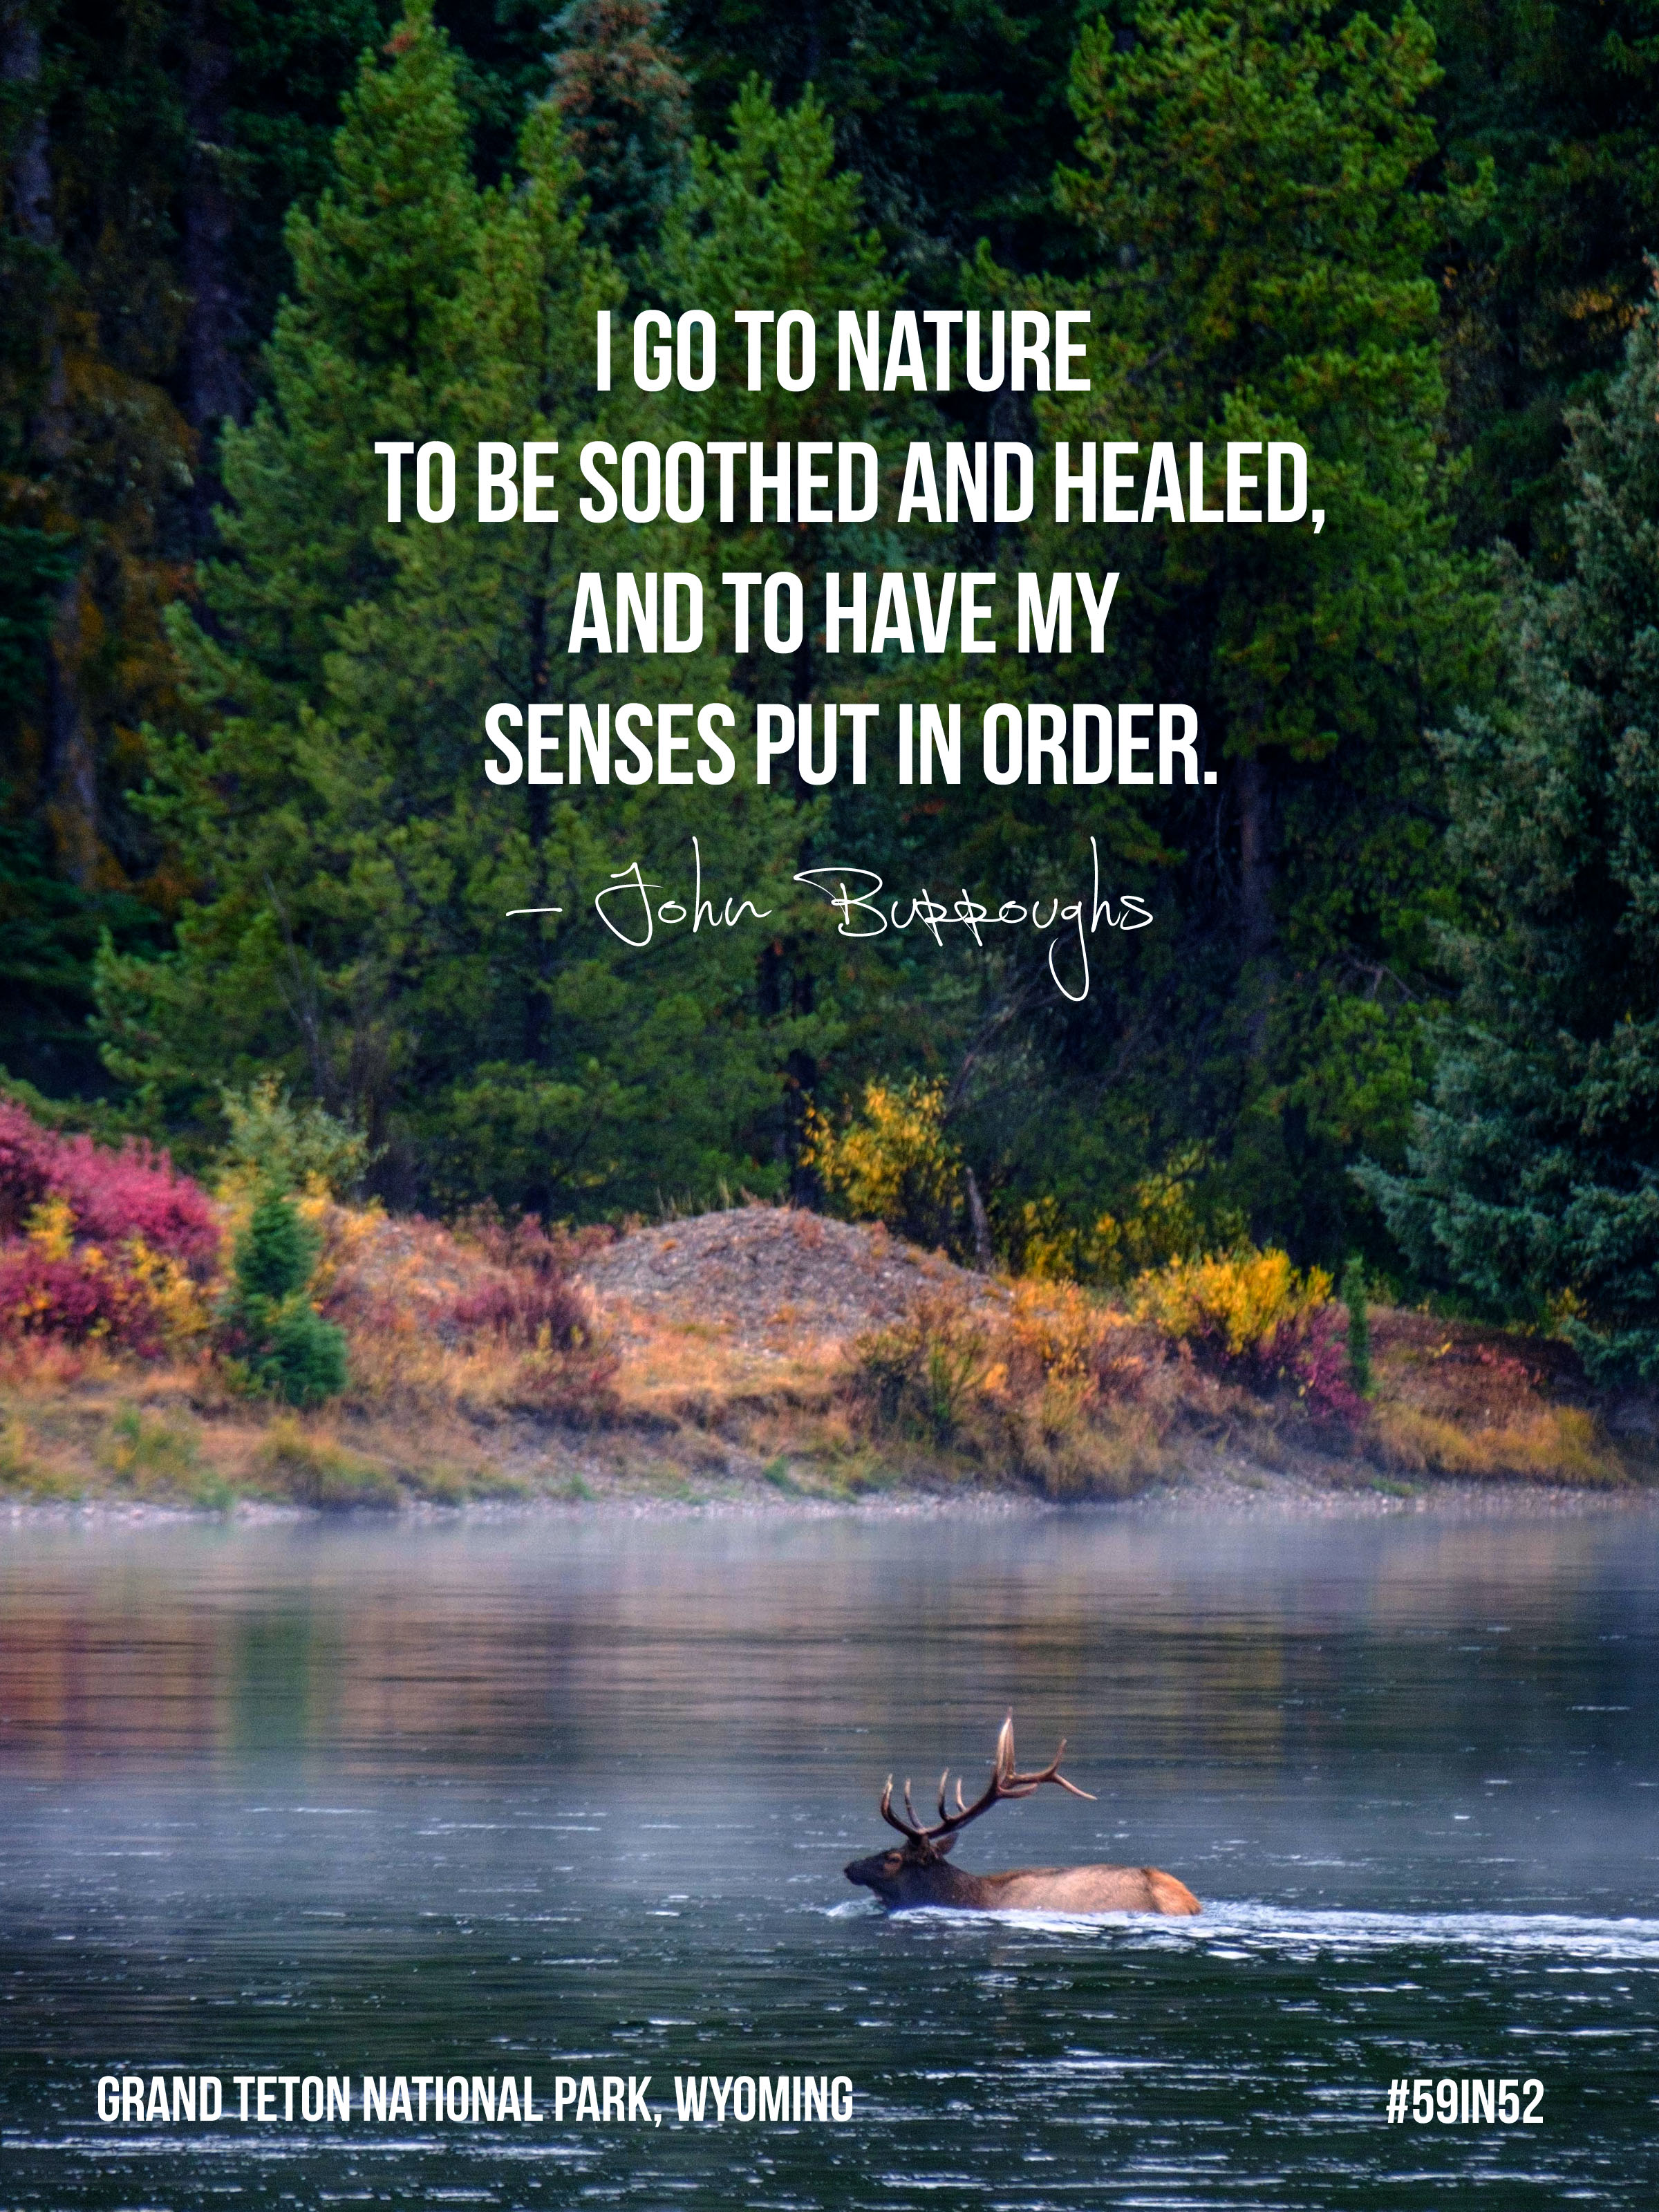 """""""I go to nature to be soothed and healed, and to have my senses put in order."""" - John Burroughs"""